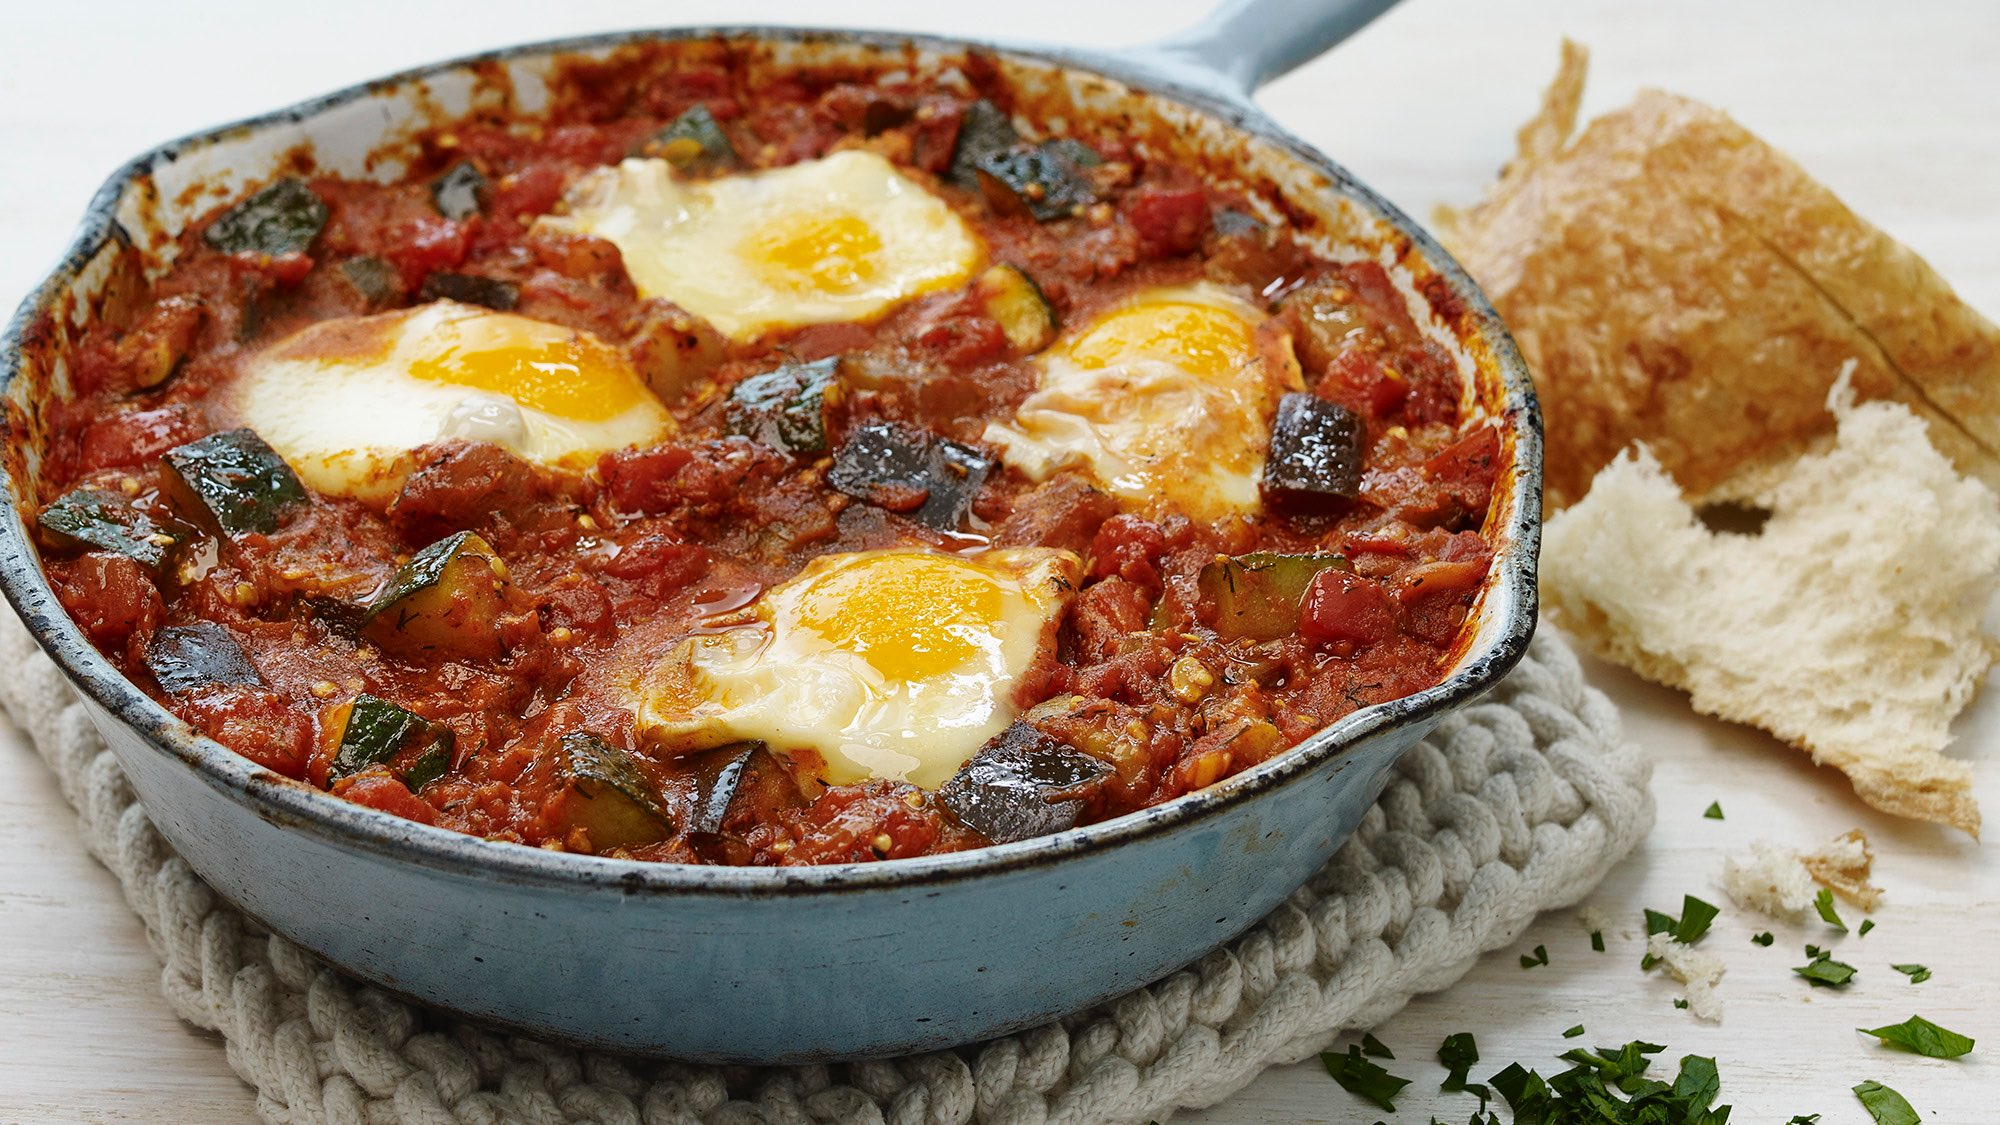 mediterranean-vegetable-shakshuka.jpg